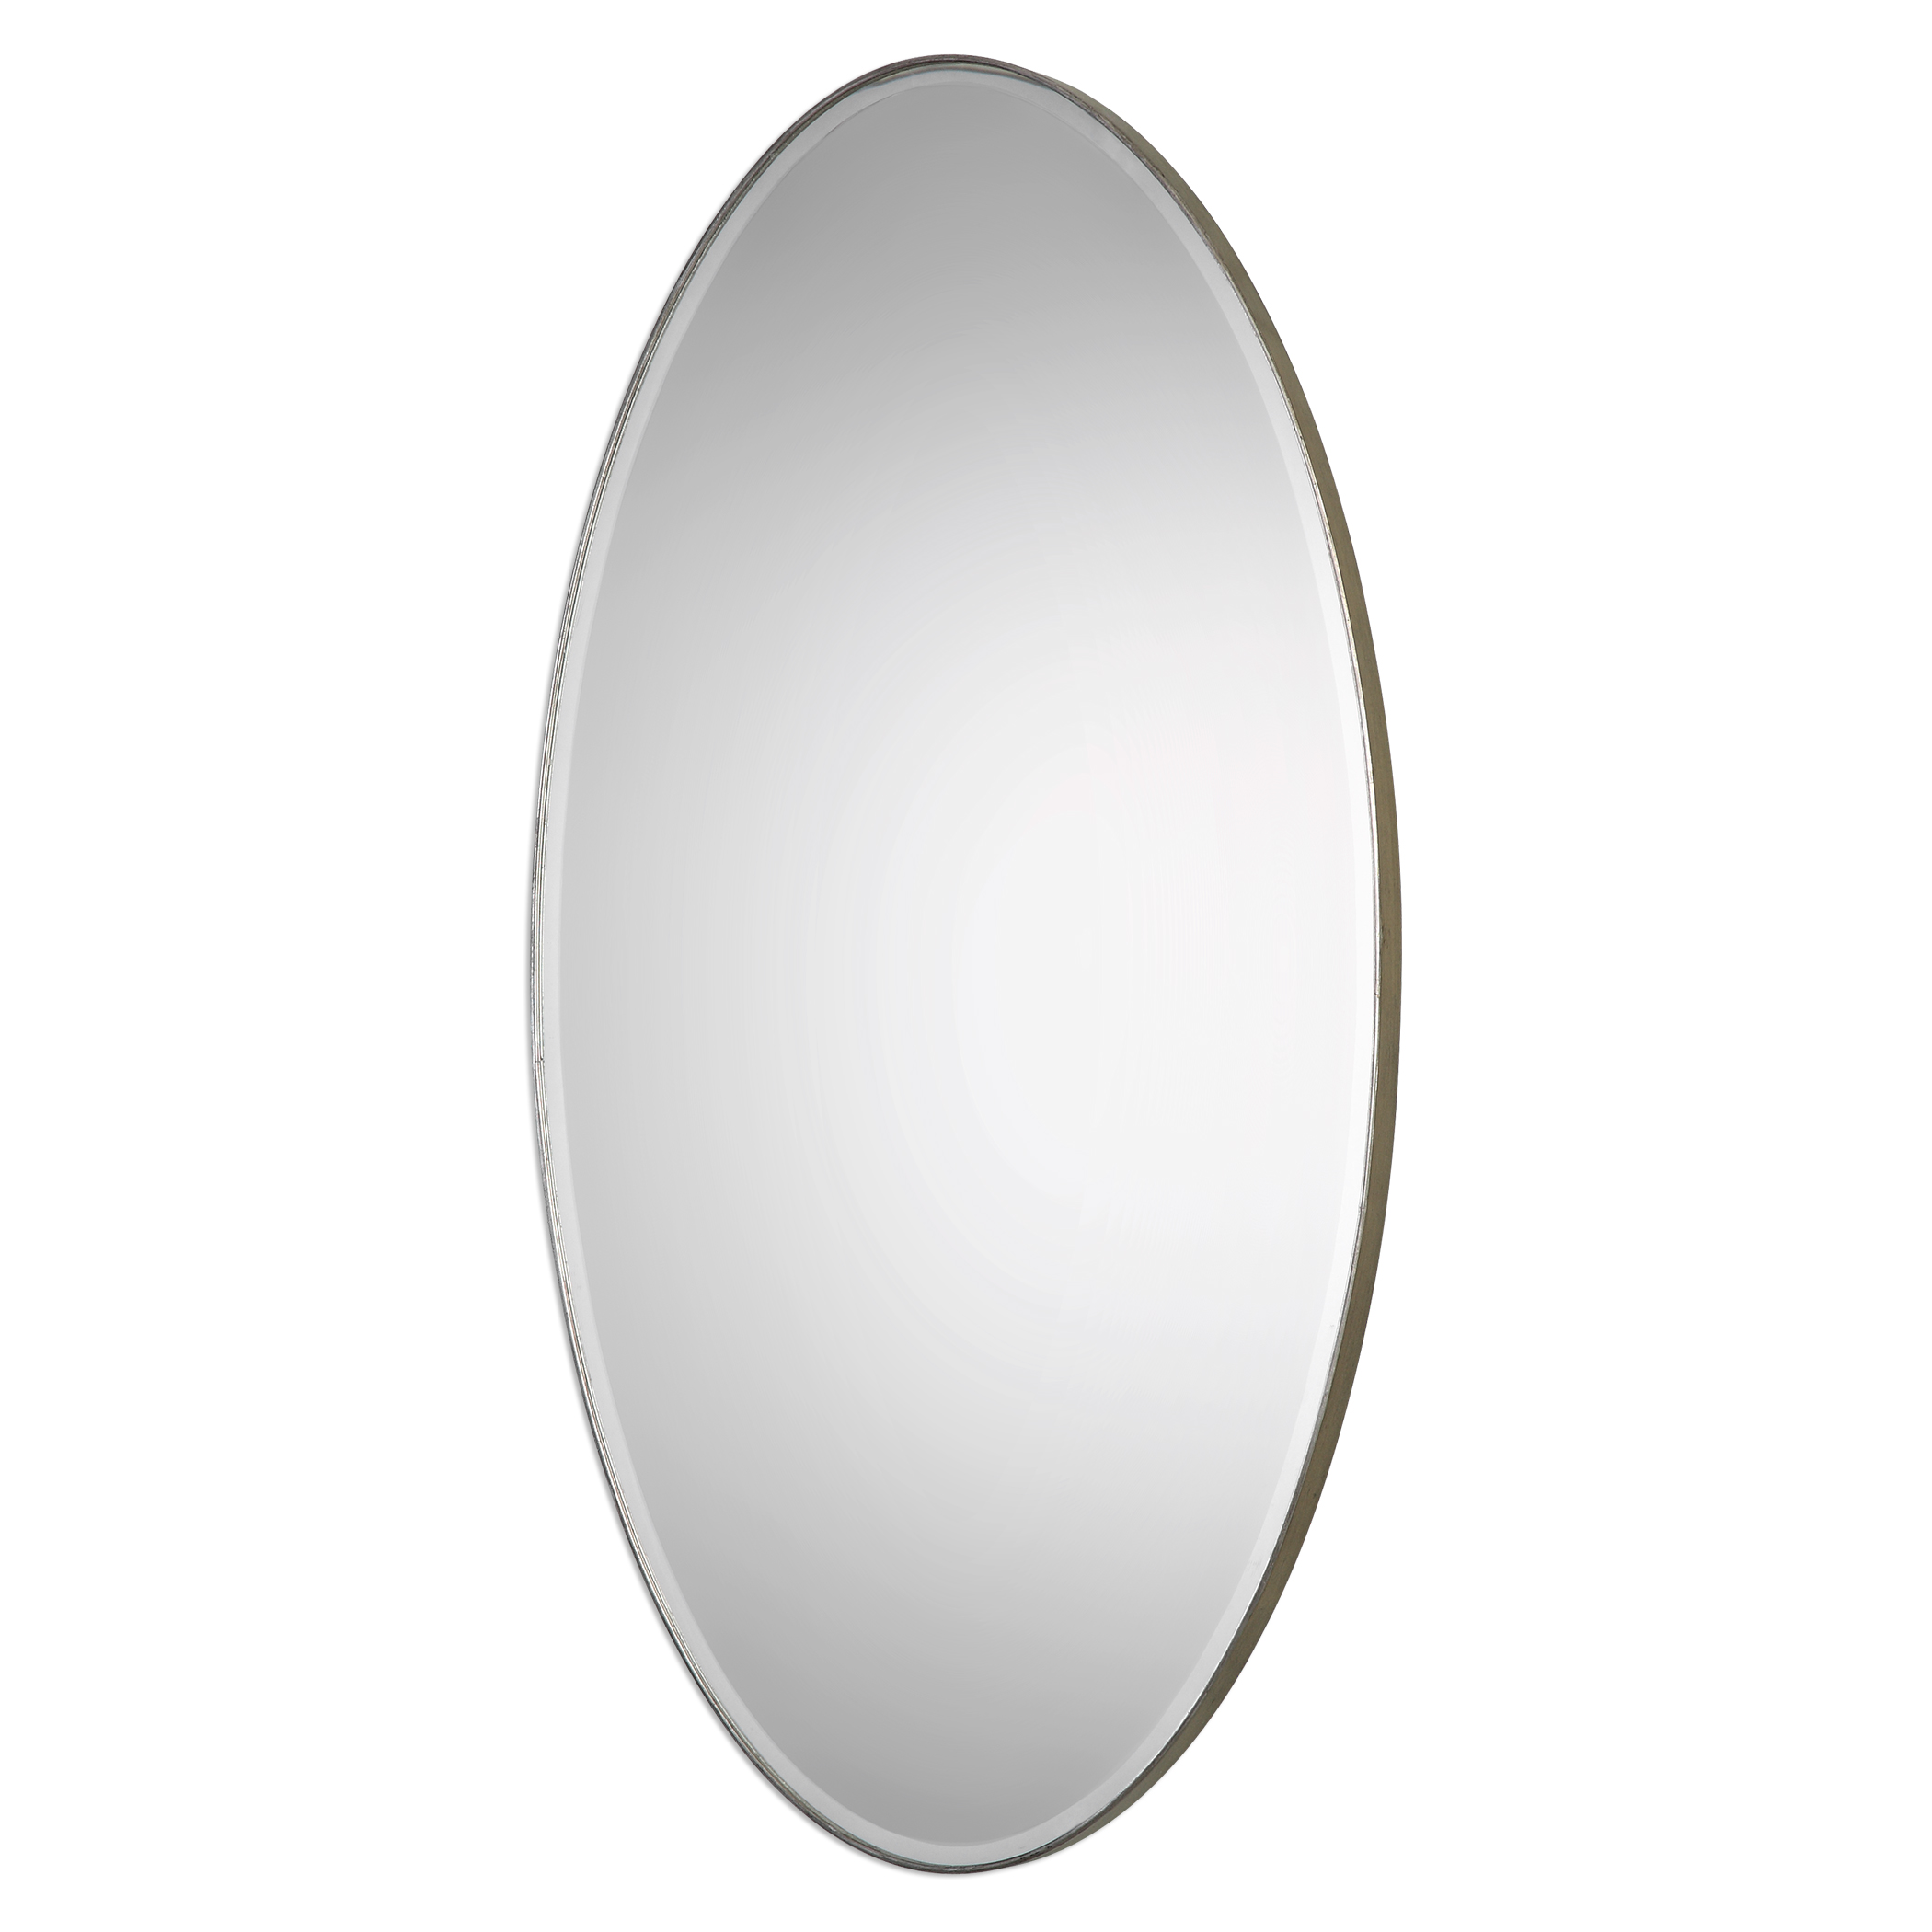 Uttermost Mirrors Petra Oval Mirror - Item Number: 09095